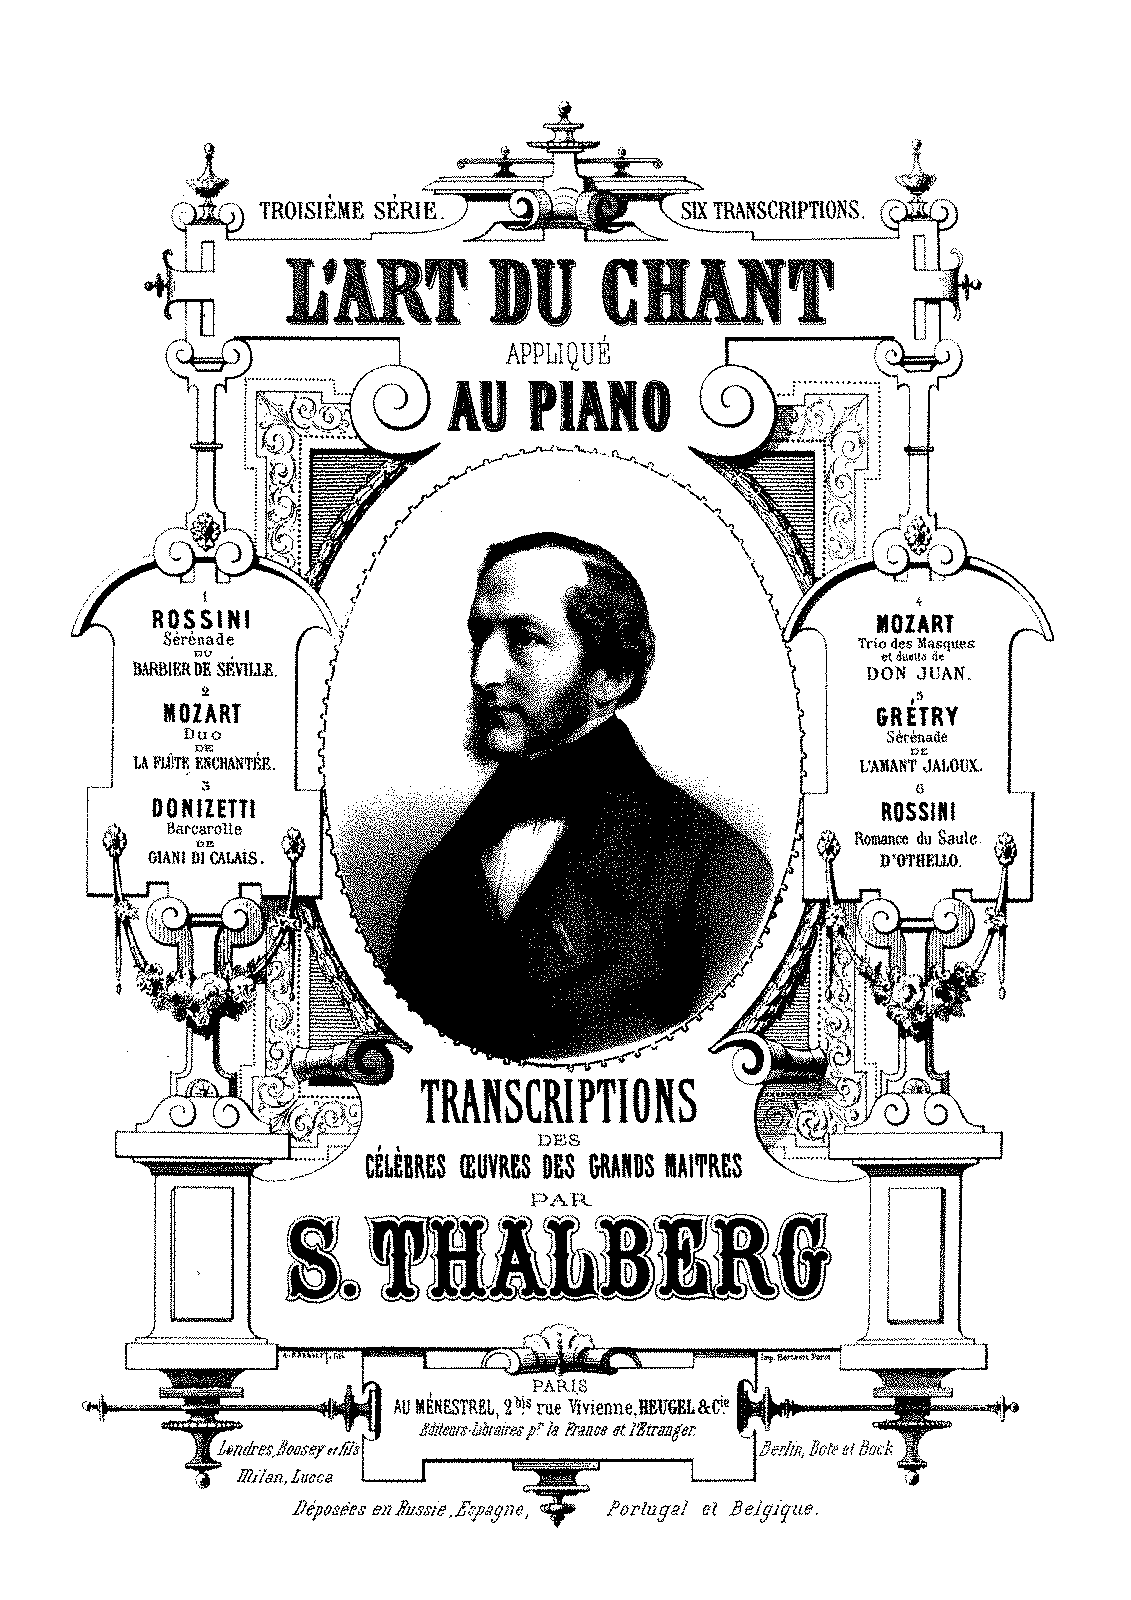 PMLP17068-Thalberg - 70-13 L' Art du Chant appliqué au Piano Op.70 No.13.pdf